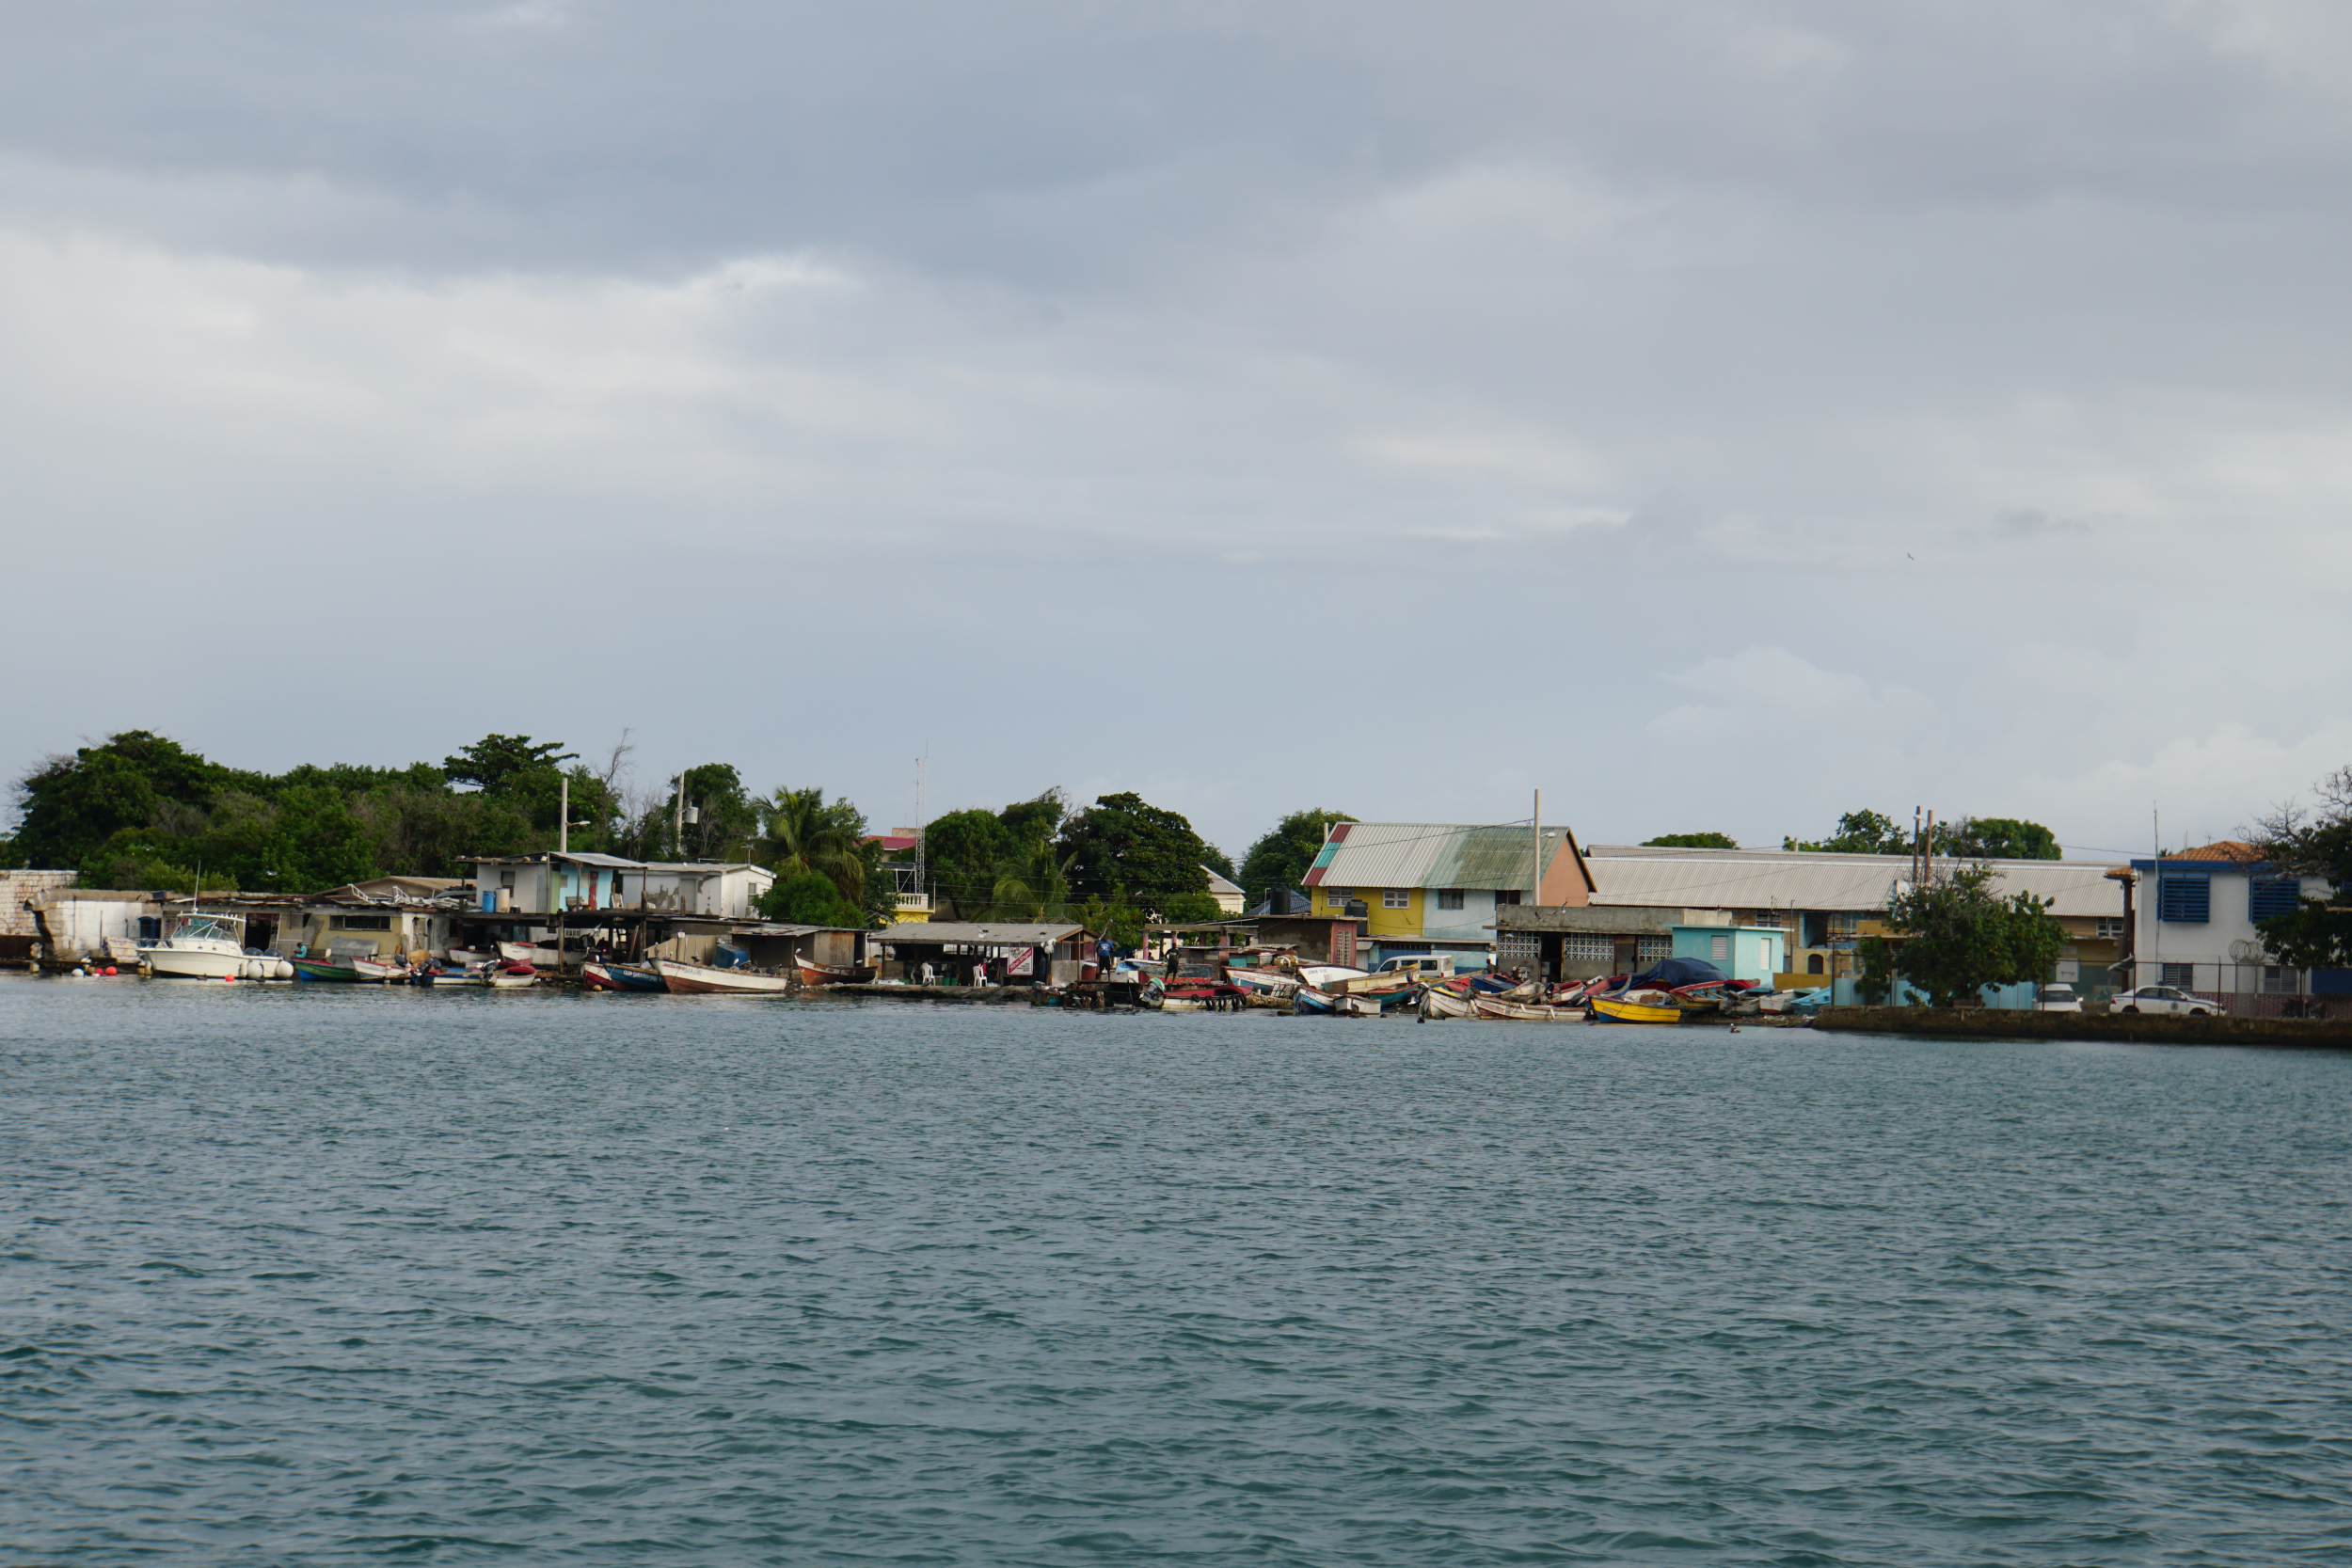 36. Port Royal water front